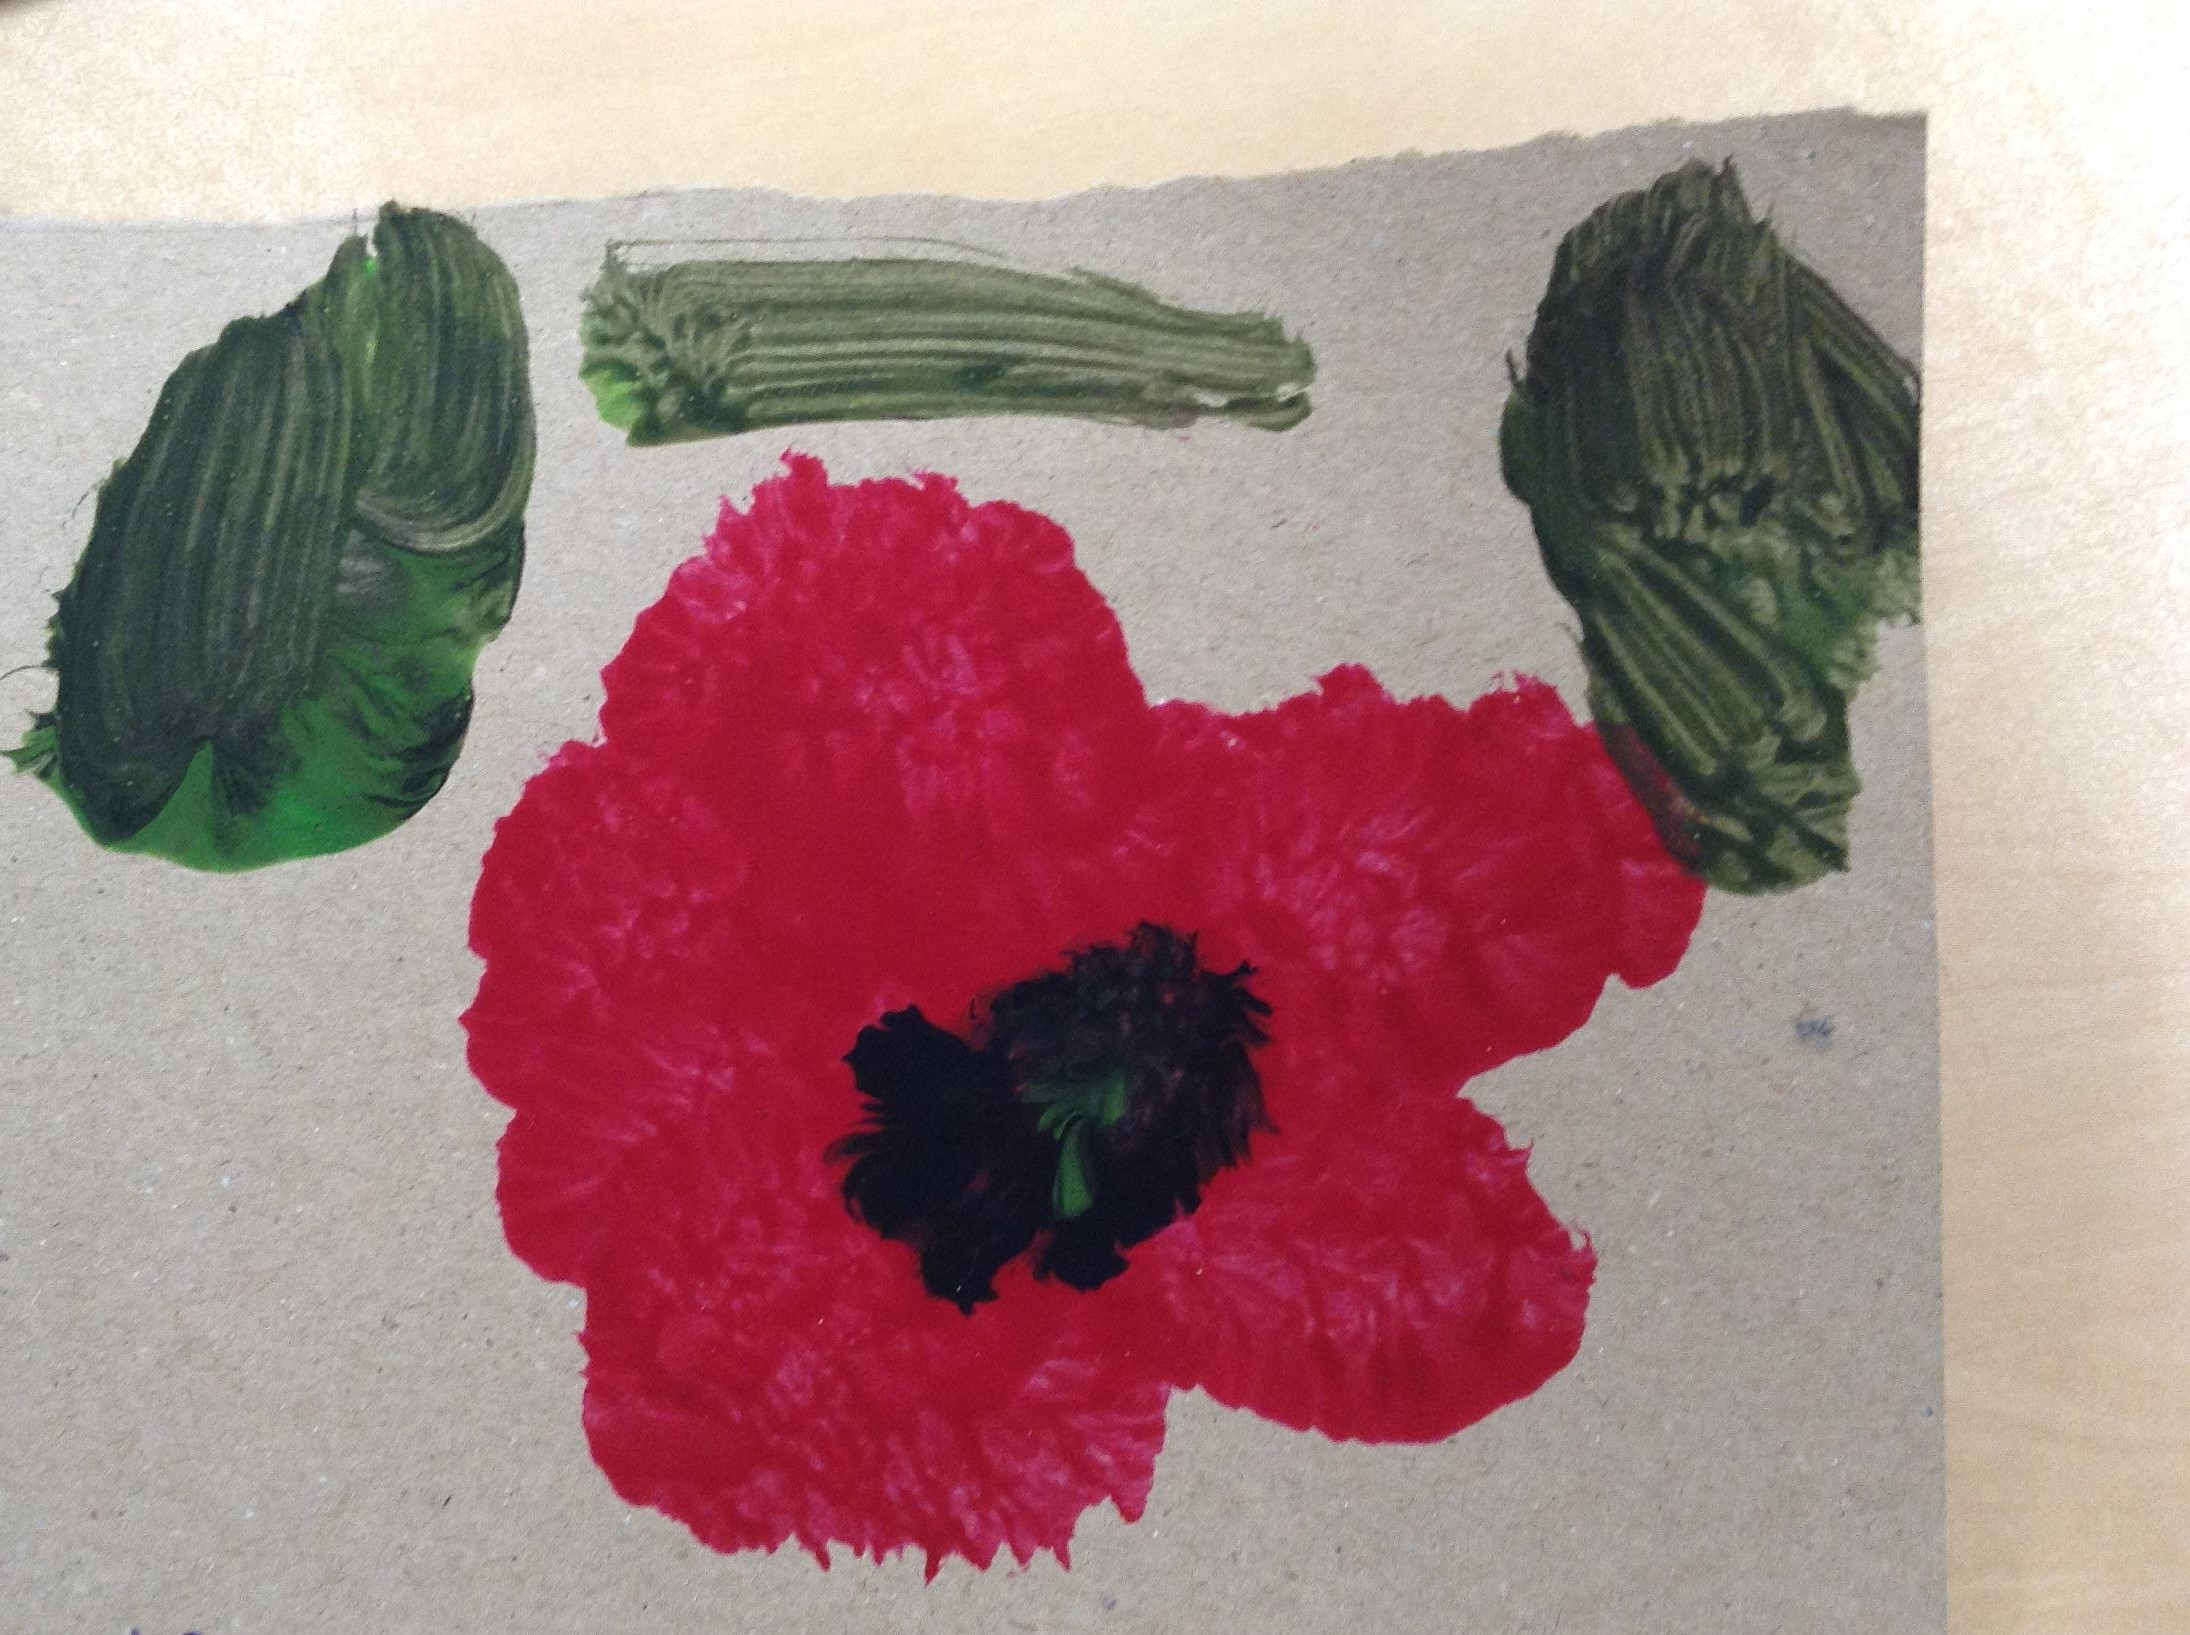 Yesterday Pre-school participated in a 2 minute silence to remember the fallen soldiers.